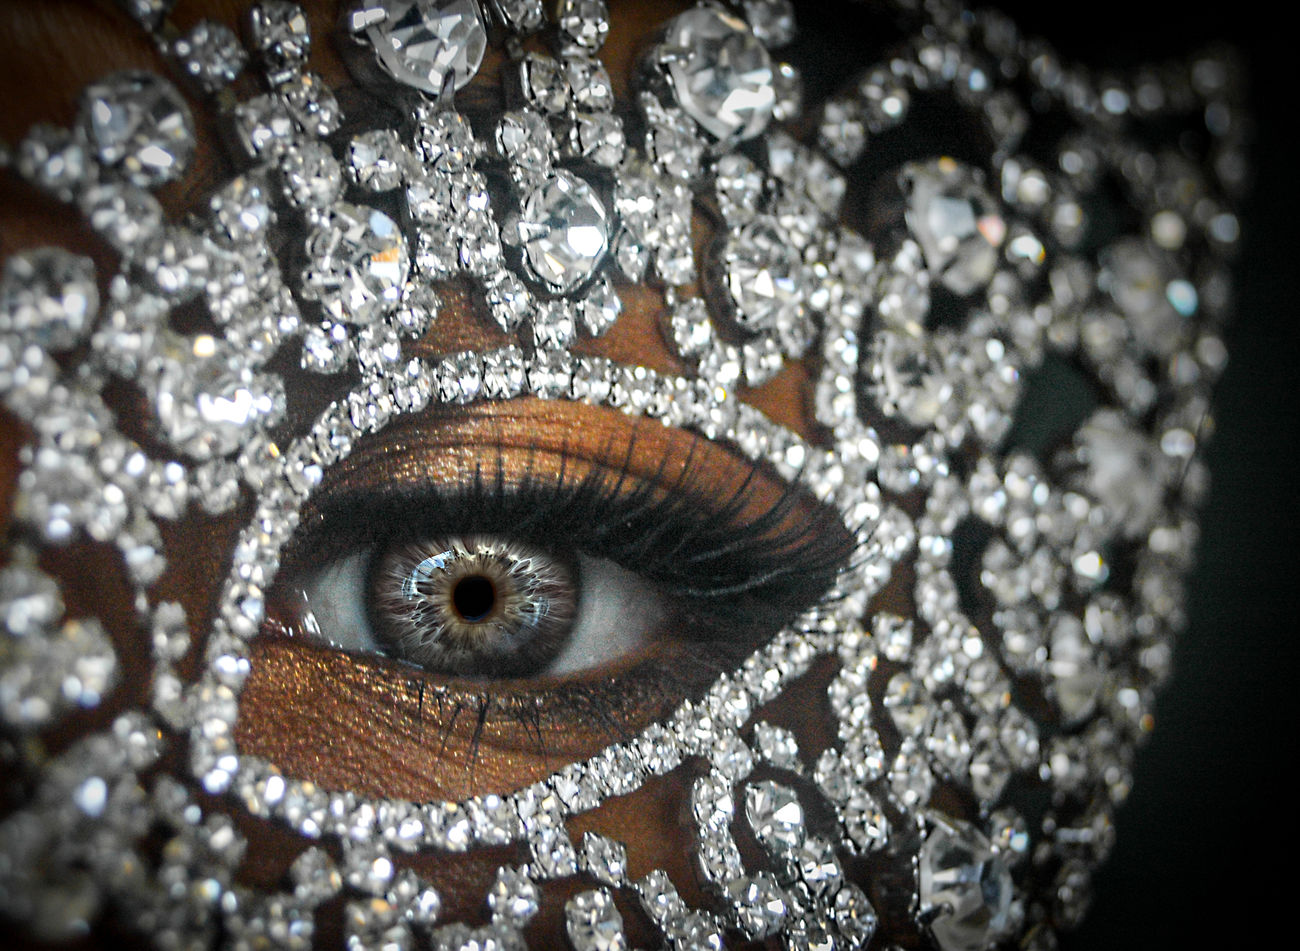 Mask Abundance Beauty Close-up Detail Diamond Diamonds Eye EyeEm Best Shots Eyes Full Frame Mask Masquerade The Portraitist - 20I6 EyeEm Awards